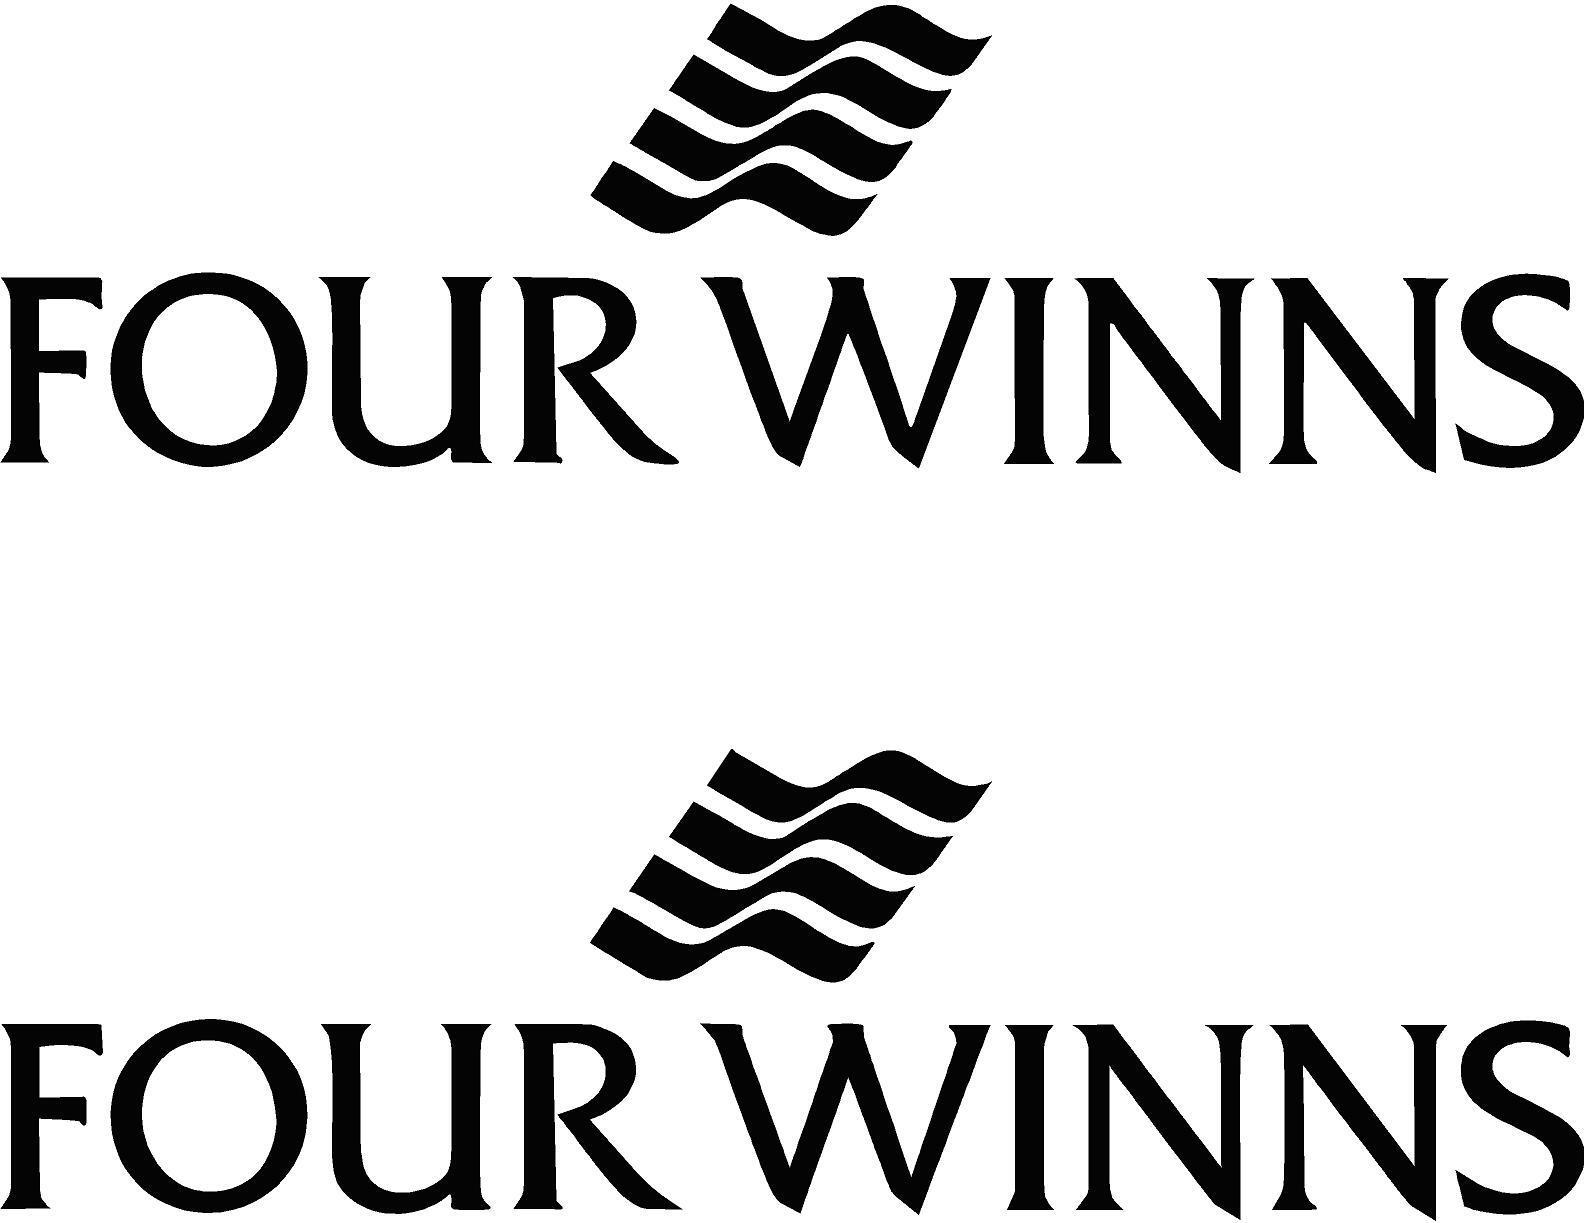 FOUR WINNS Boat Lettering Vinyl Decals Boat Stickers 2 piece set 22 in